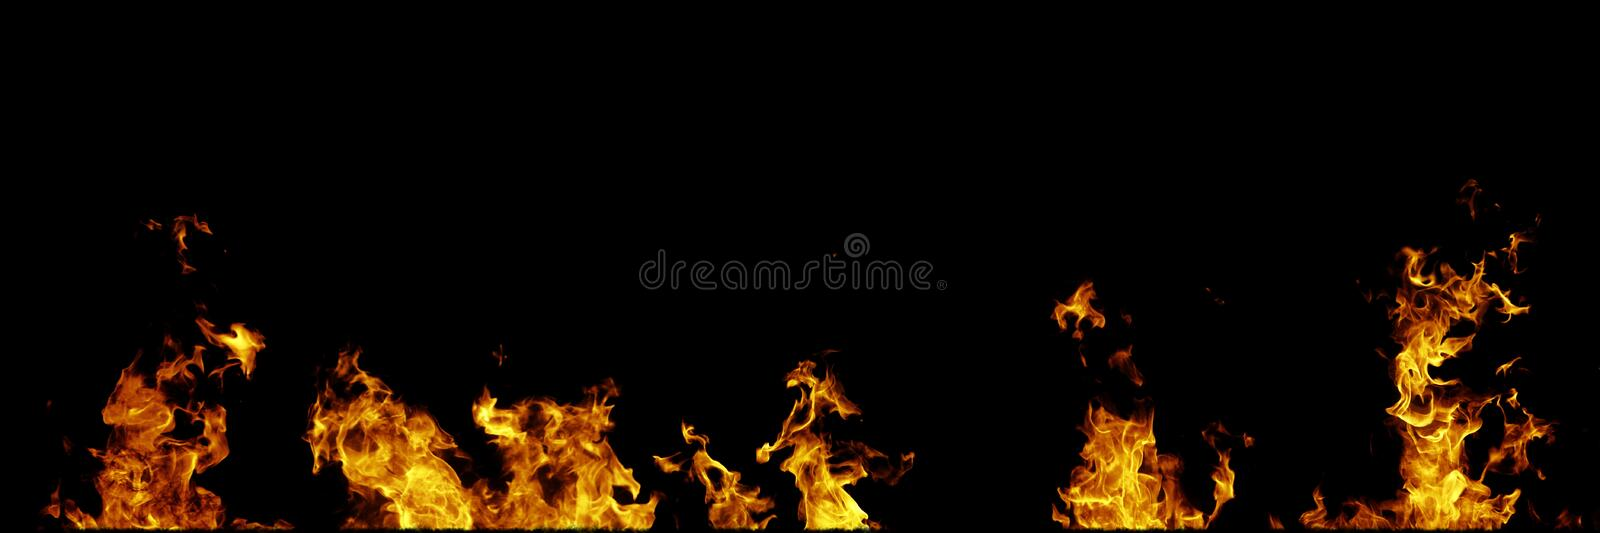 Real fire flames isolated on black background. Mockup on black of 5 flames. Real fire flames isolated on black background. Mockup of 5 flames royalty free illustration